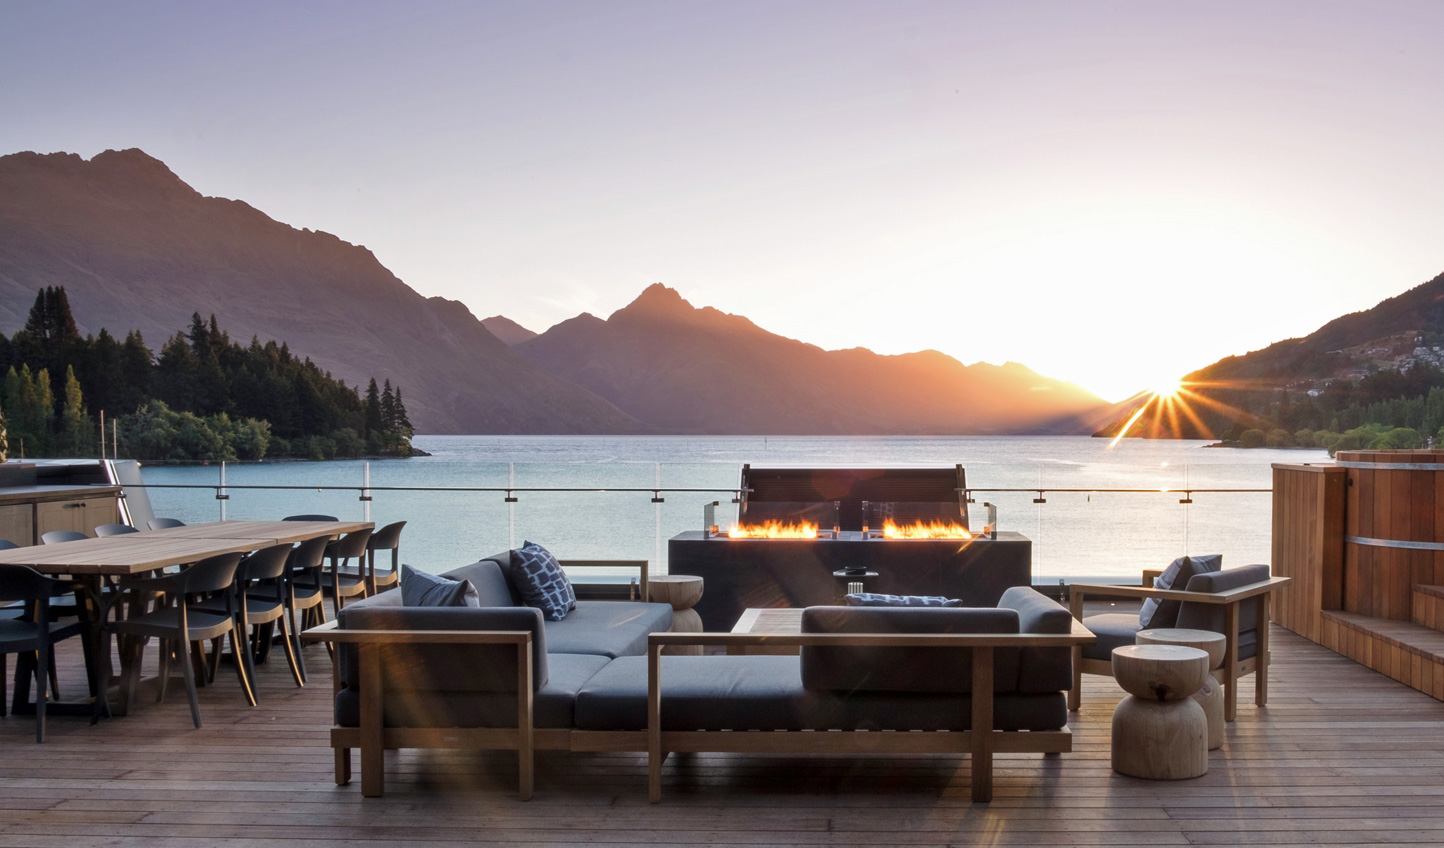 End each day with a glass of New Zealand wine overlooking spectacular landscapes